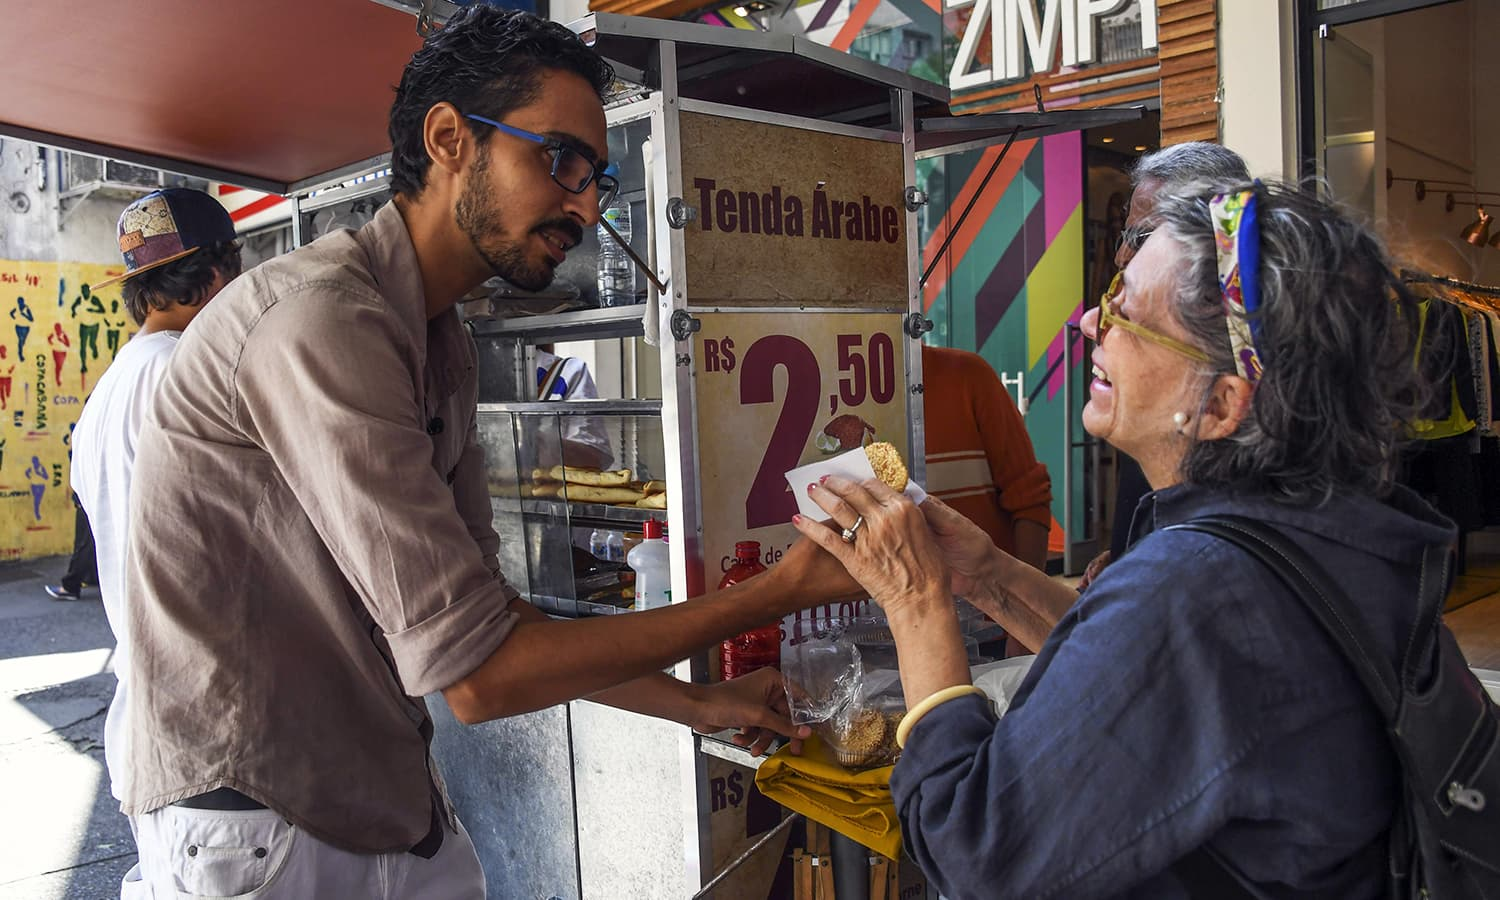 Mohamed Ali Abdelmoatty Kenawy attends to a customer at his food stand in Rio de Janeiro.— AFP